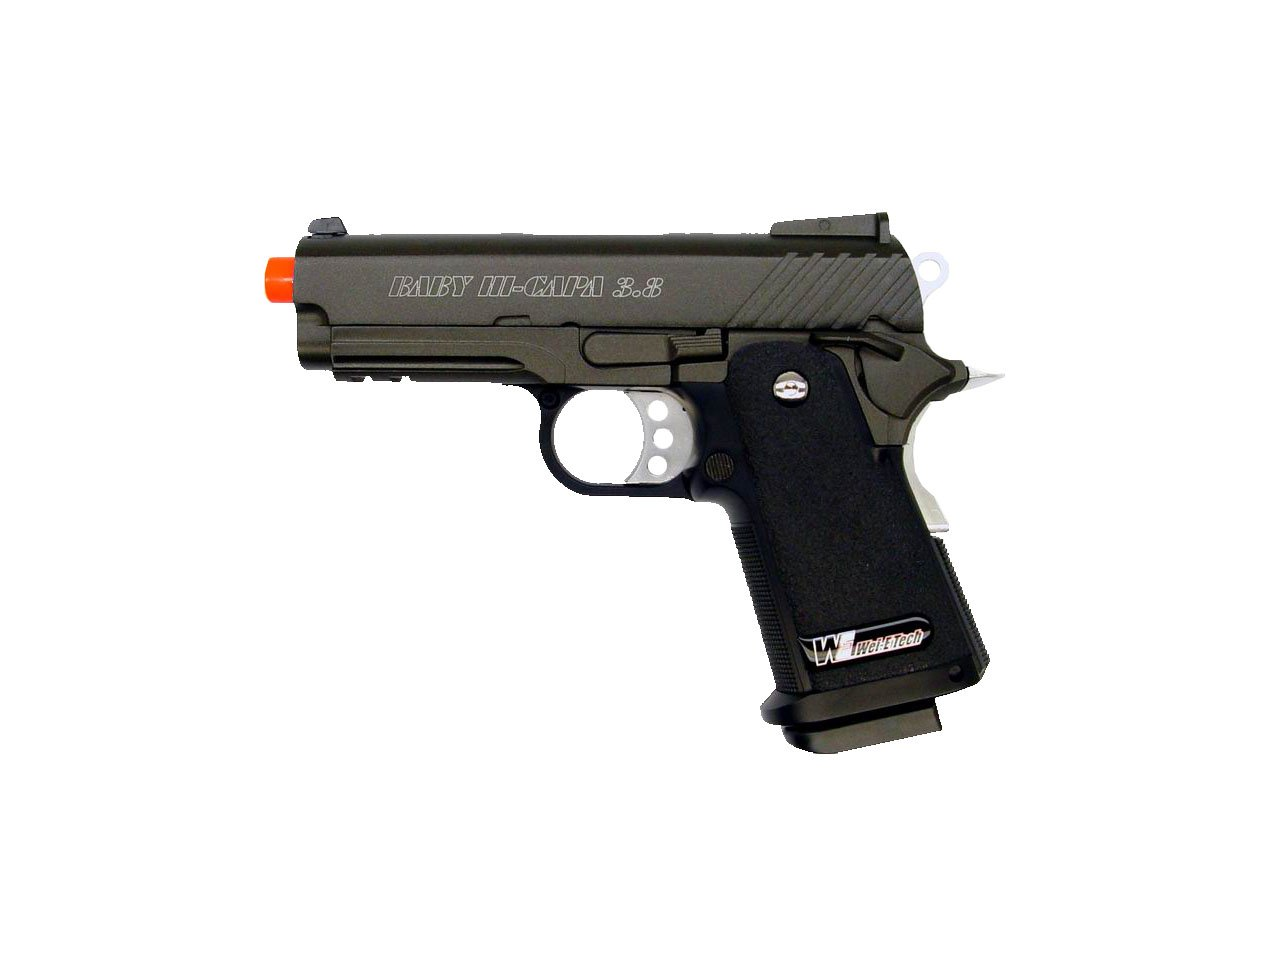 we baby hi-capa v2 3.8 gas/co2 blowback full metal(Airsoft Gun)